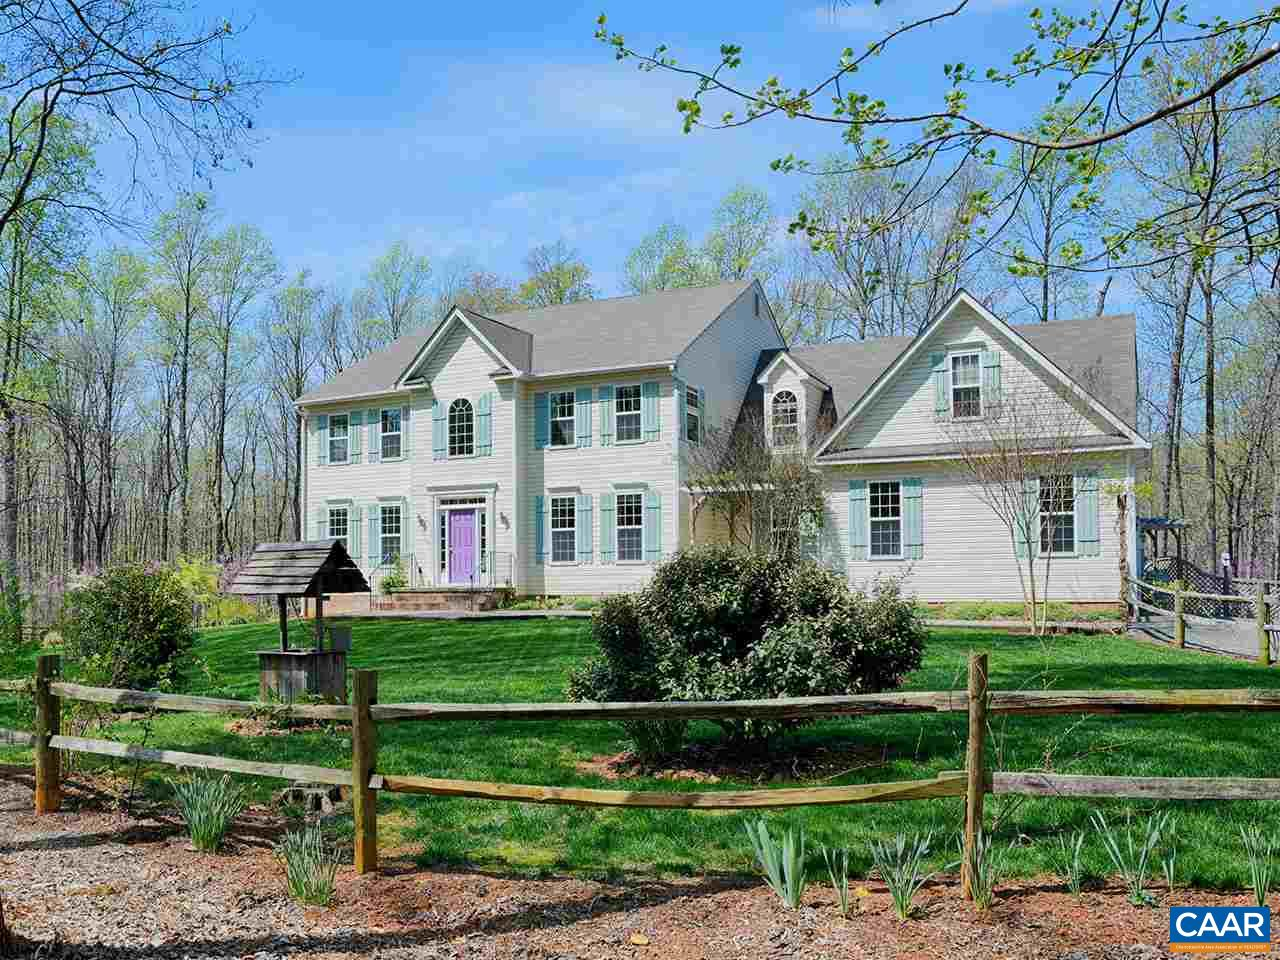 18248-b BUZZARD HOLLOW RD, GORDONSVILLE, VA 22942